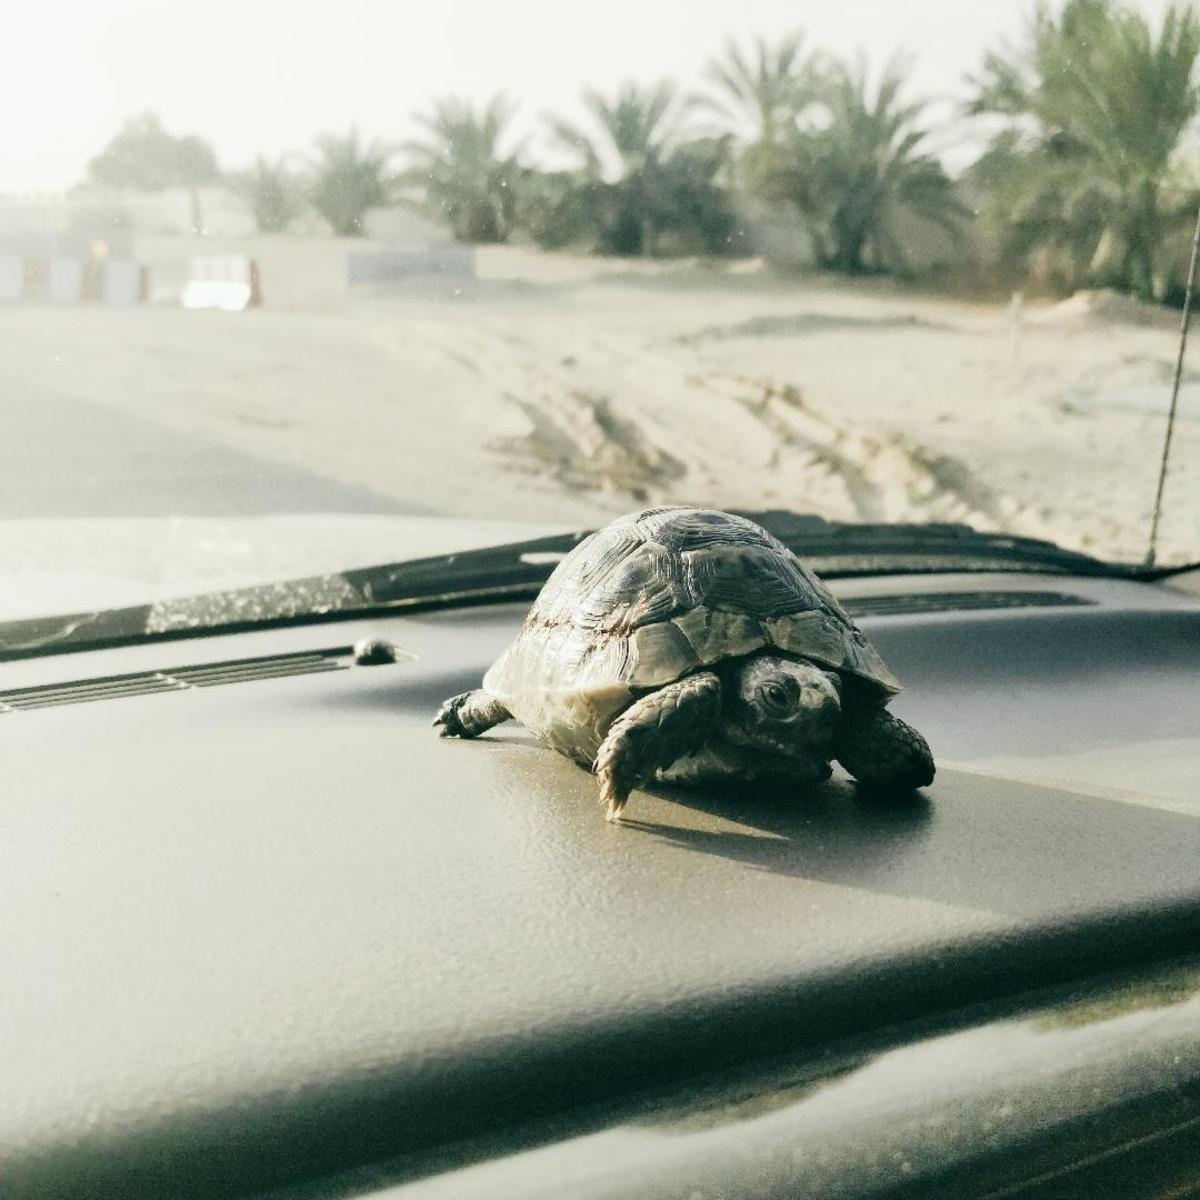 My tortoise Lenny, sitting on the dashboard of a car